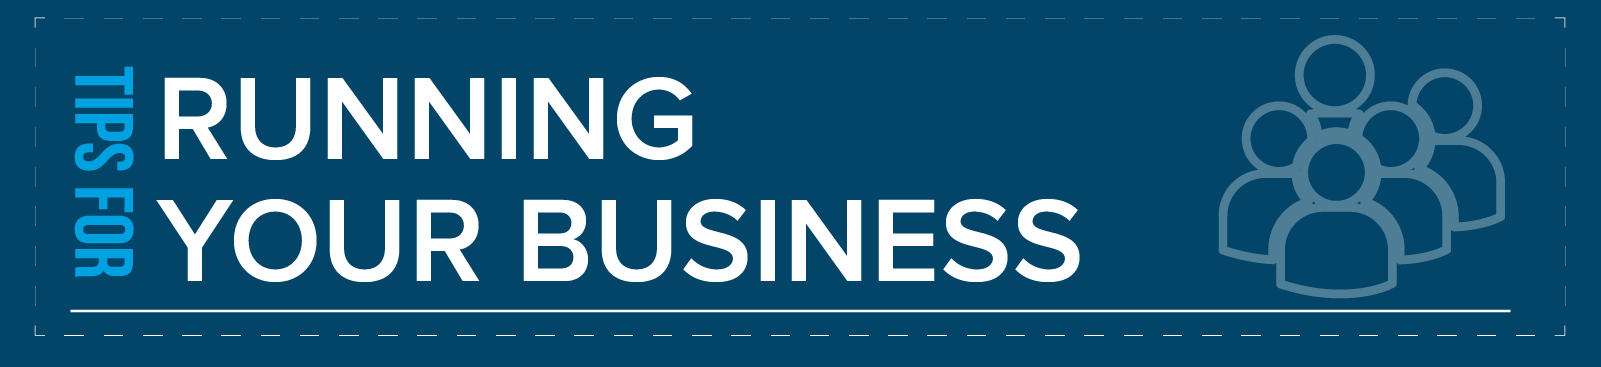 Deputy-30 Tips Real Business Owners Share for Opening a Successful Services Business-blog assets-06